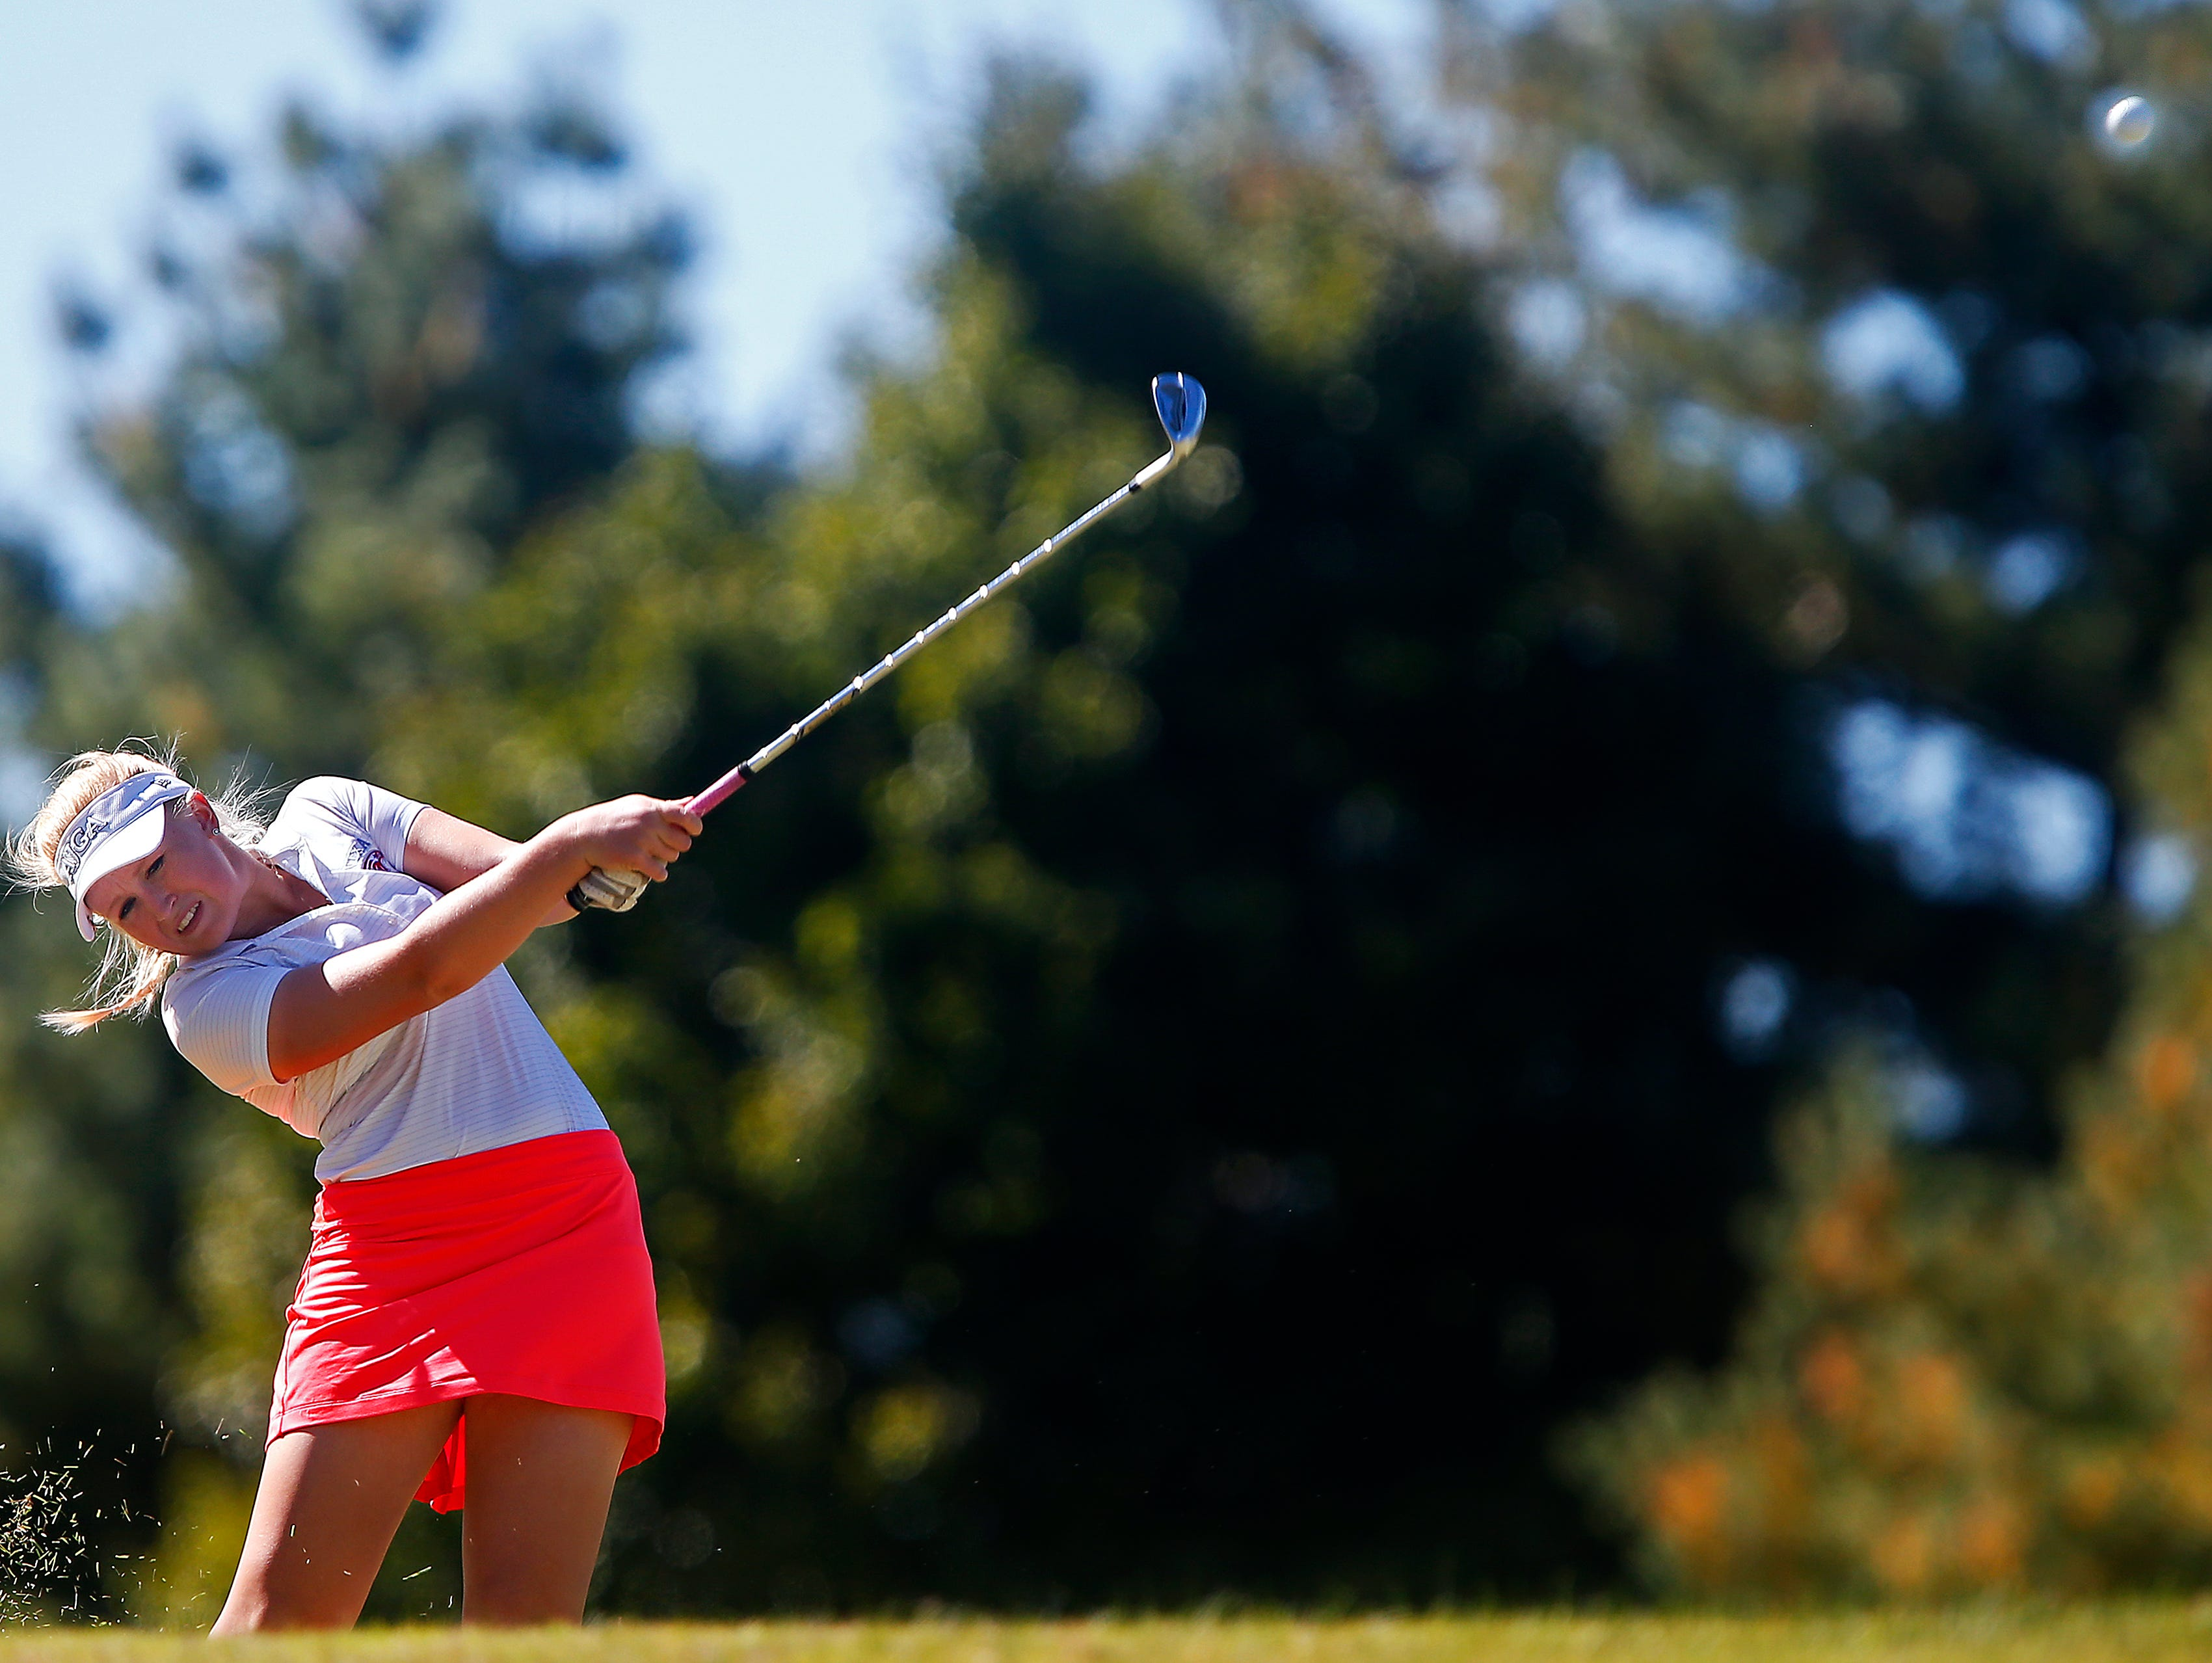 Nixa High School golfer Beth McDonald tees off from the 3rd hole of the Rivercut Golf Club during the 2015 MSHSAA Class 2 Girls Golf State Championship played in Springfield, Mo. on Oct. 13, 2015.